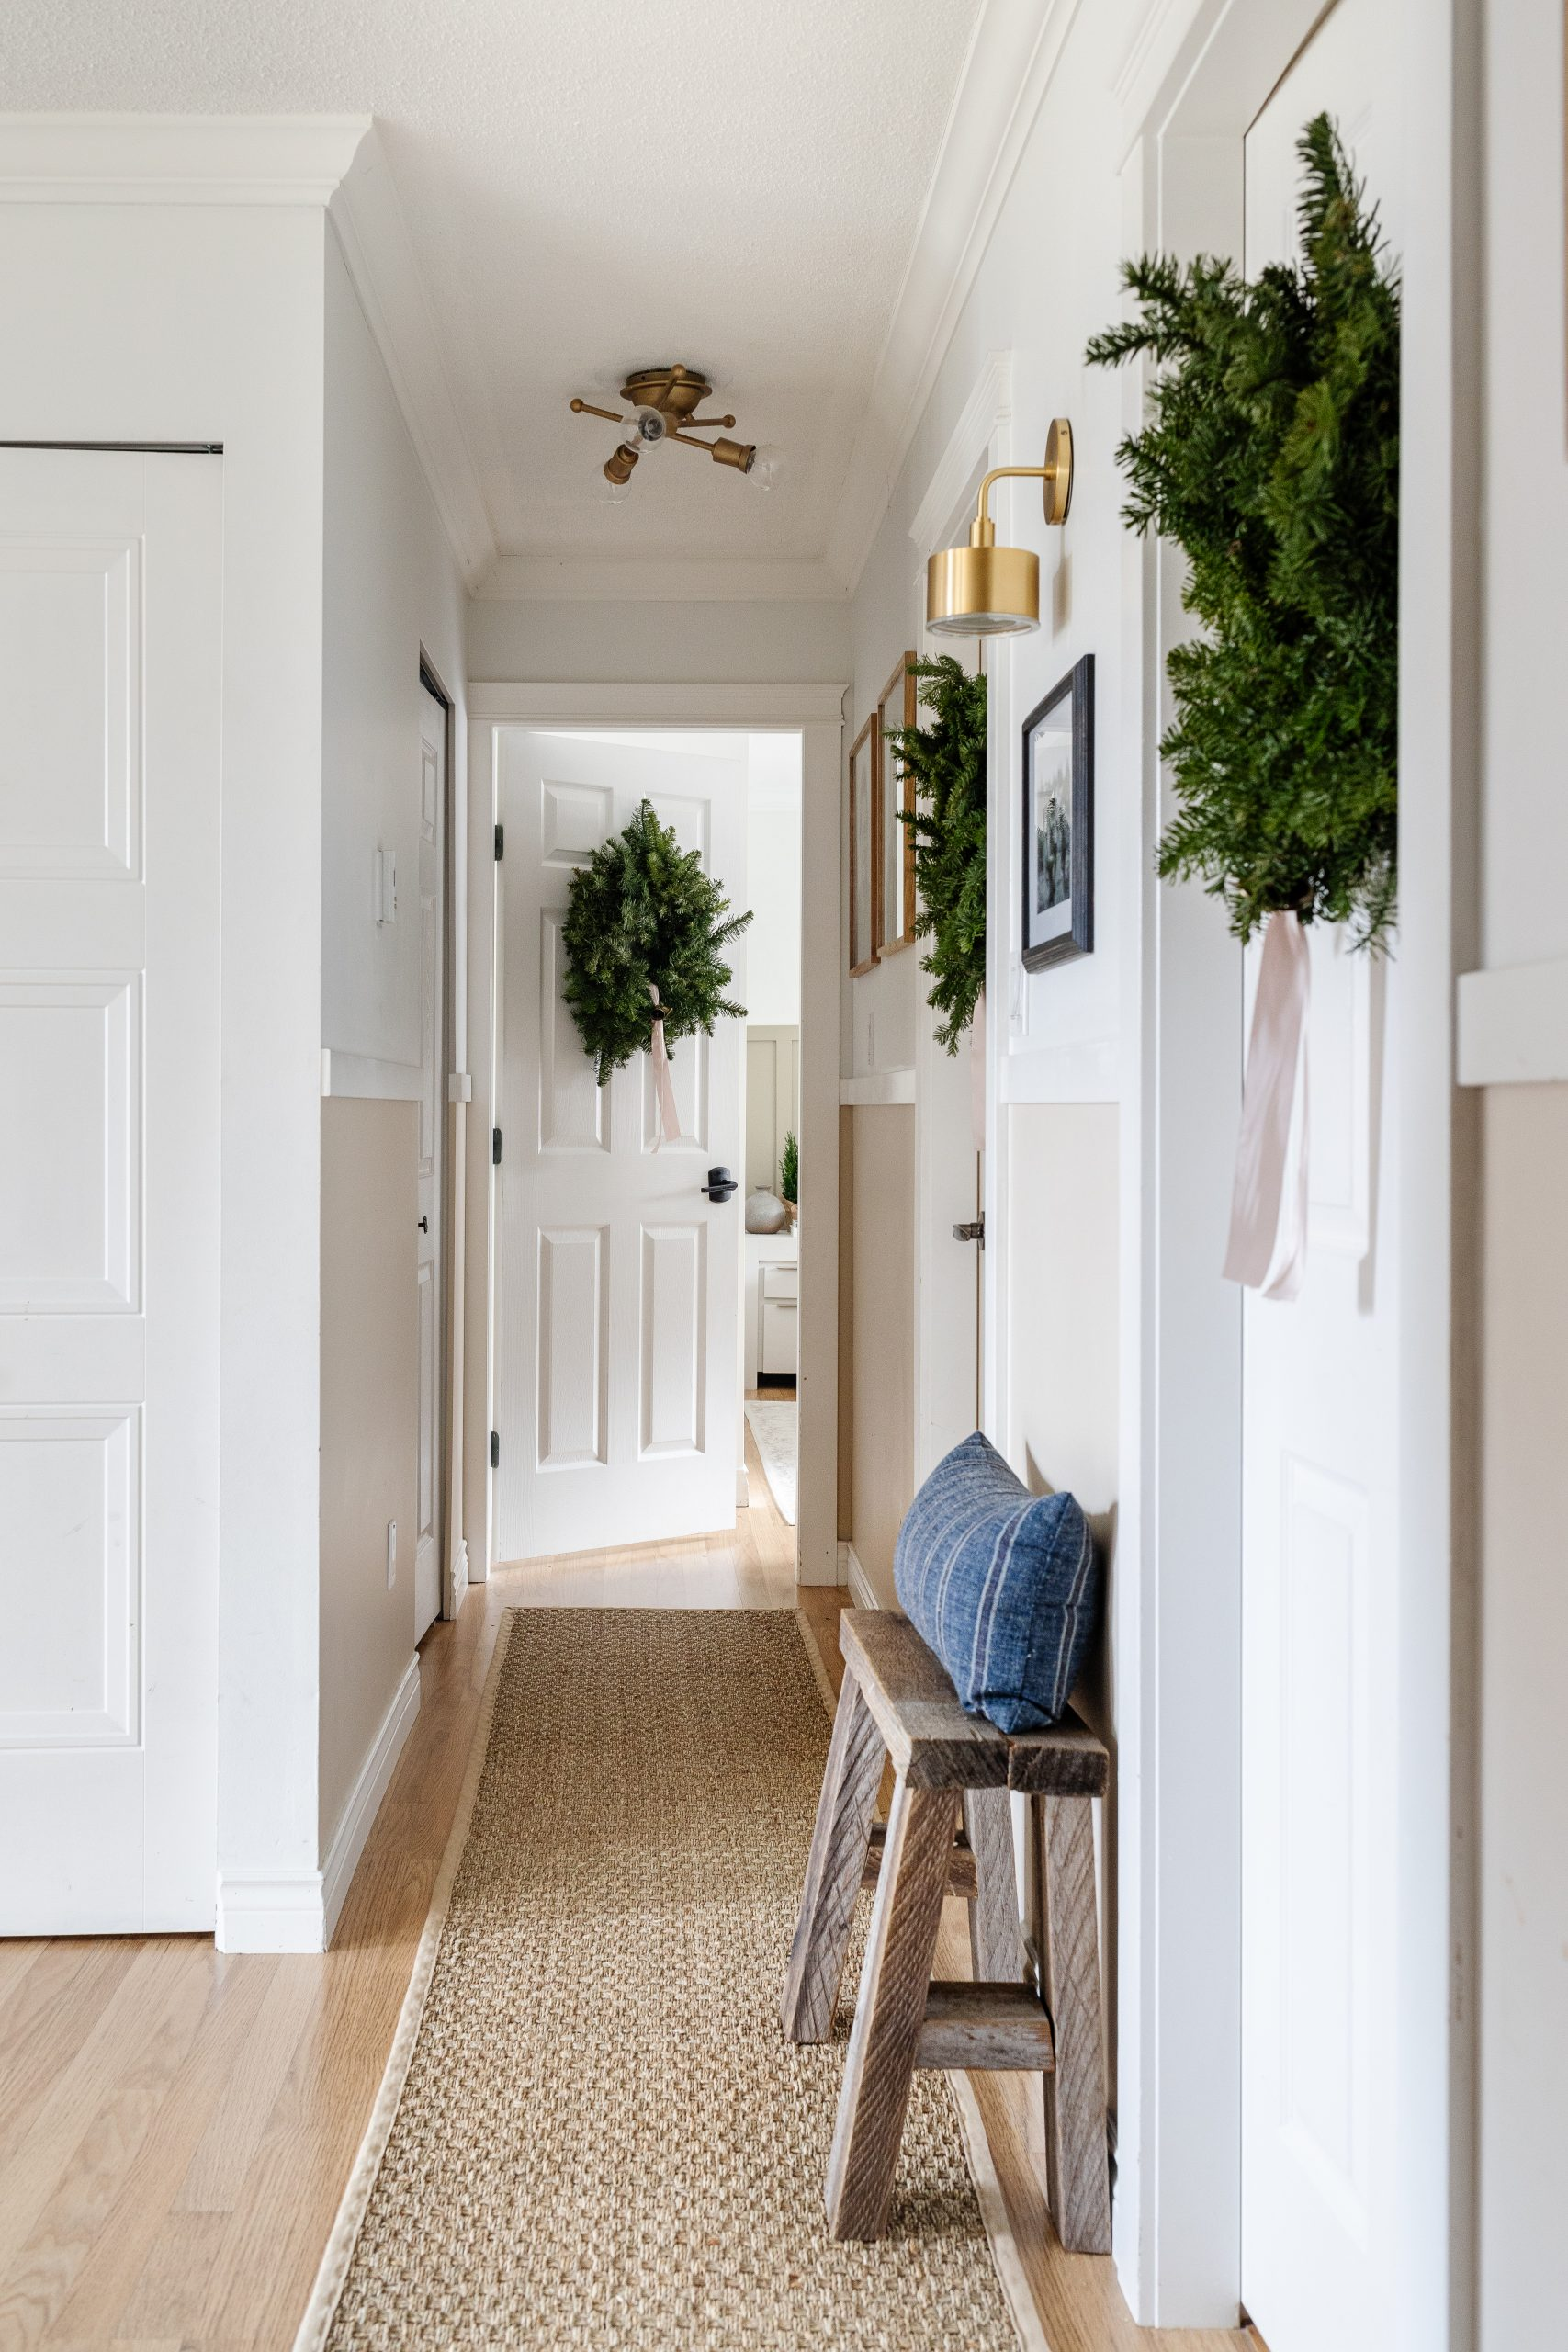 My 2020 Holiday Home Tour. How I styled our home for the holidays very minimal and used items that were thrifted as well as items I made. I hope I can inspire you that you can make your home beautiful too! Here's our modern farmhouse